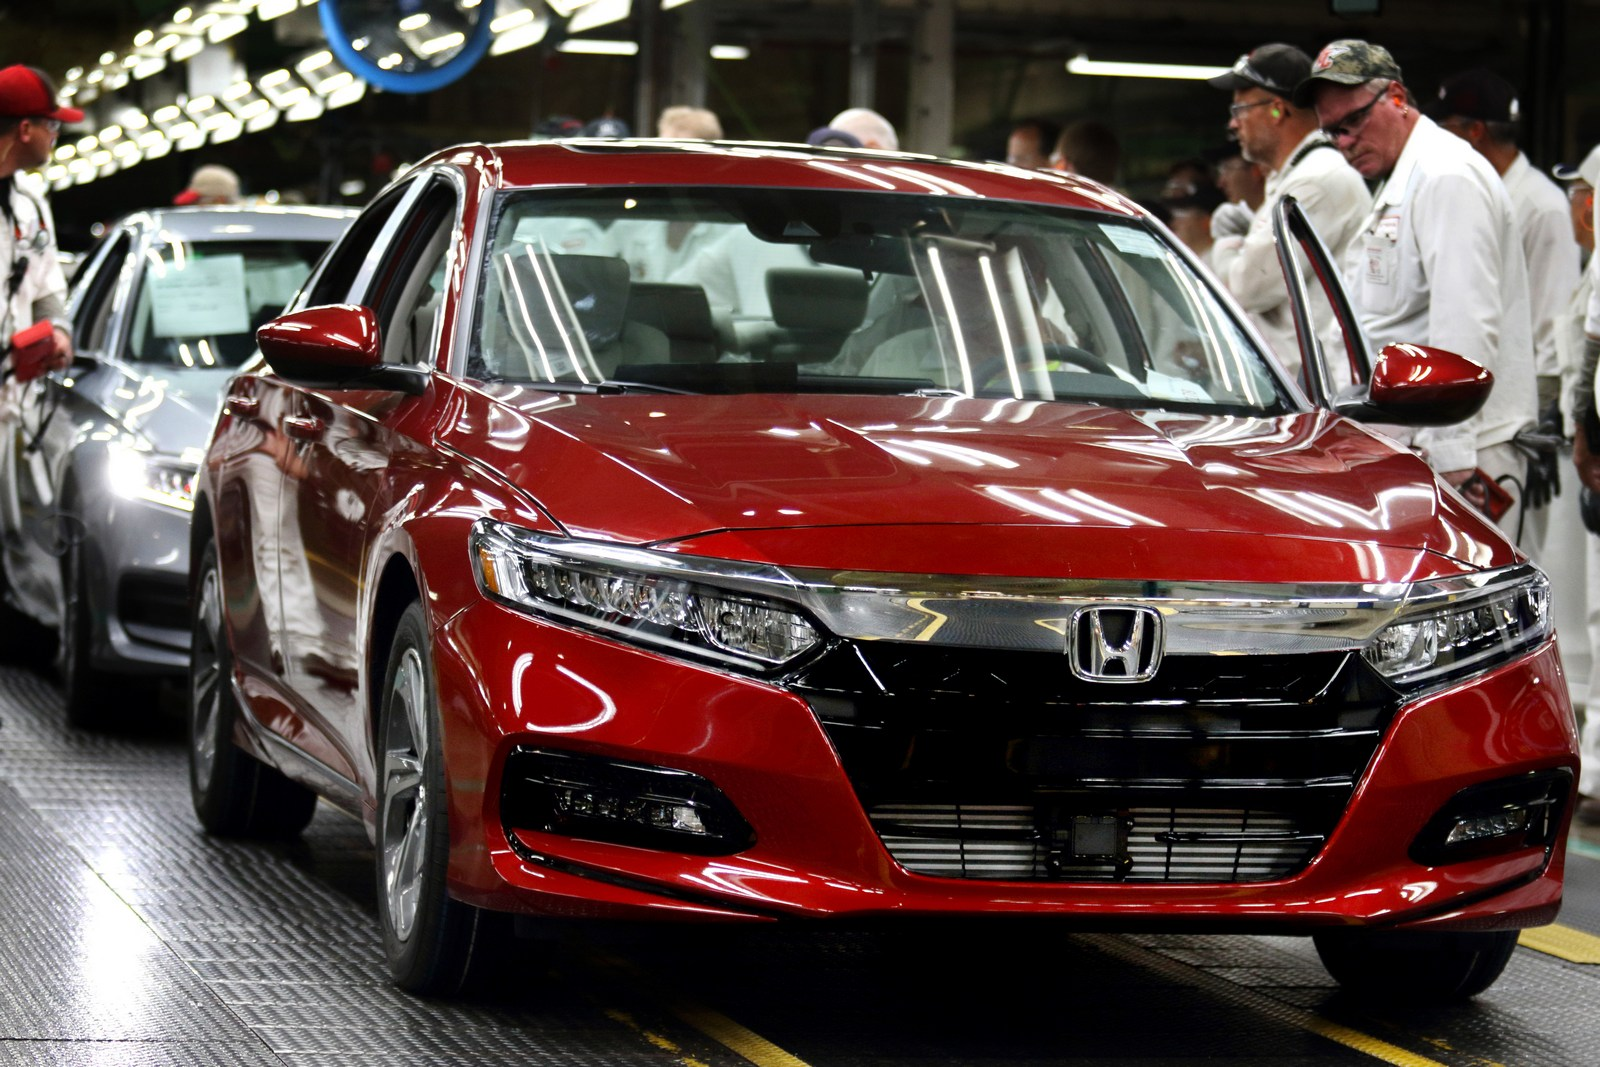 honda production Honda will sporadically halt production if its accord sedan and coupe over the next four months due to slow sales.